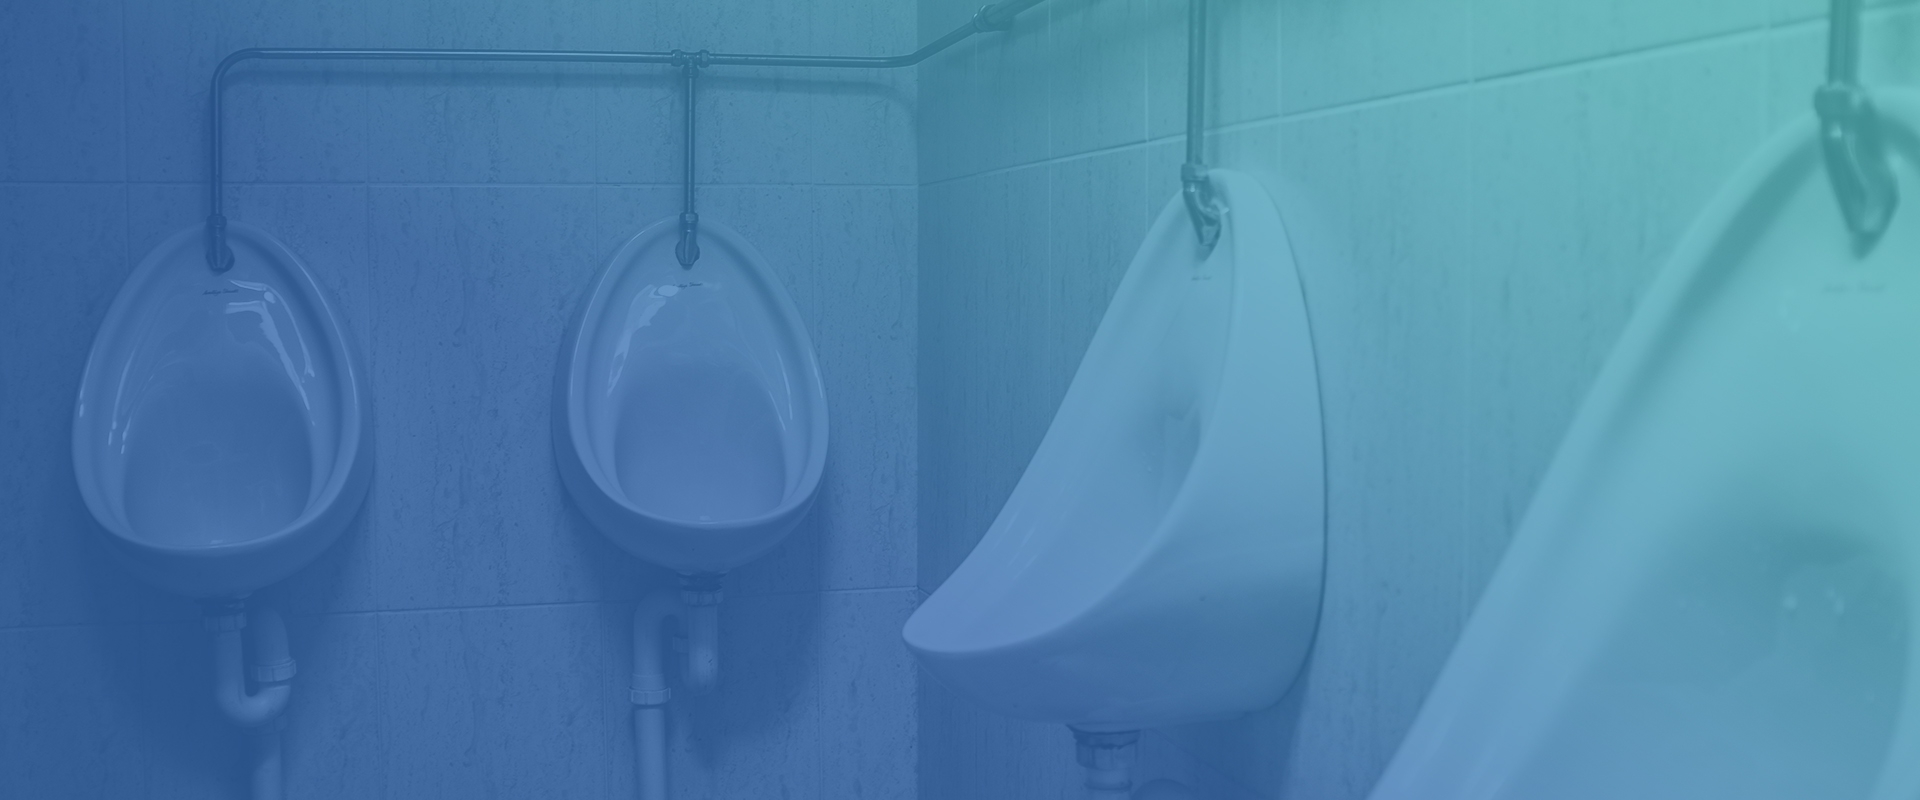 HSG-Washroom-Services-—-Urinal-Care.jpg#asset:2185